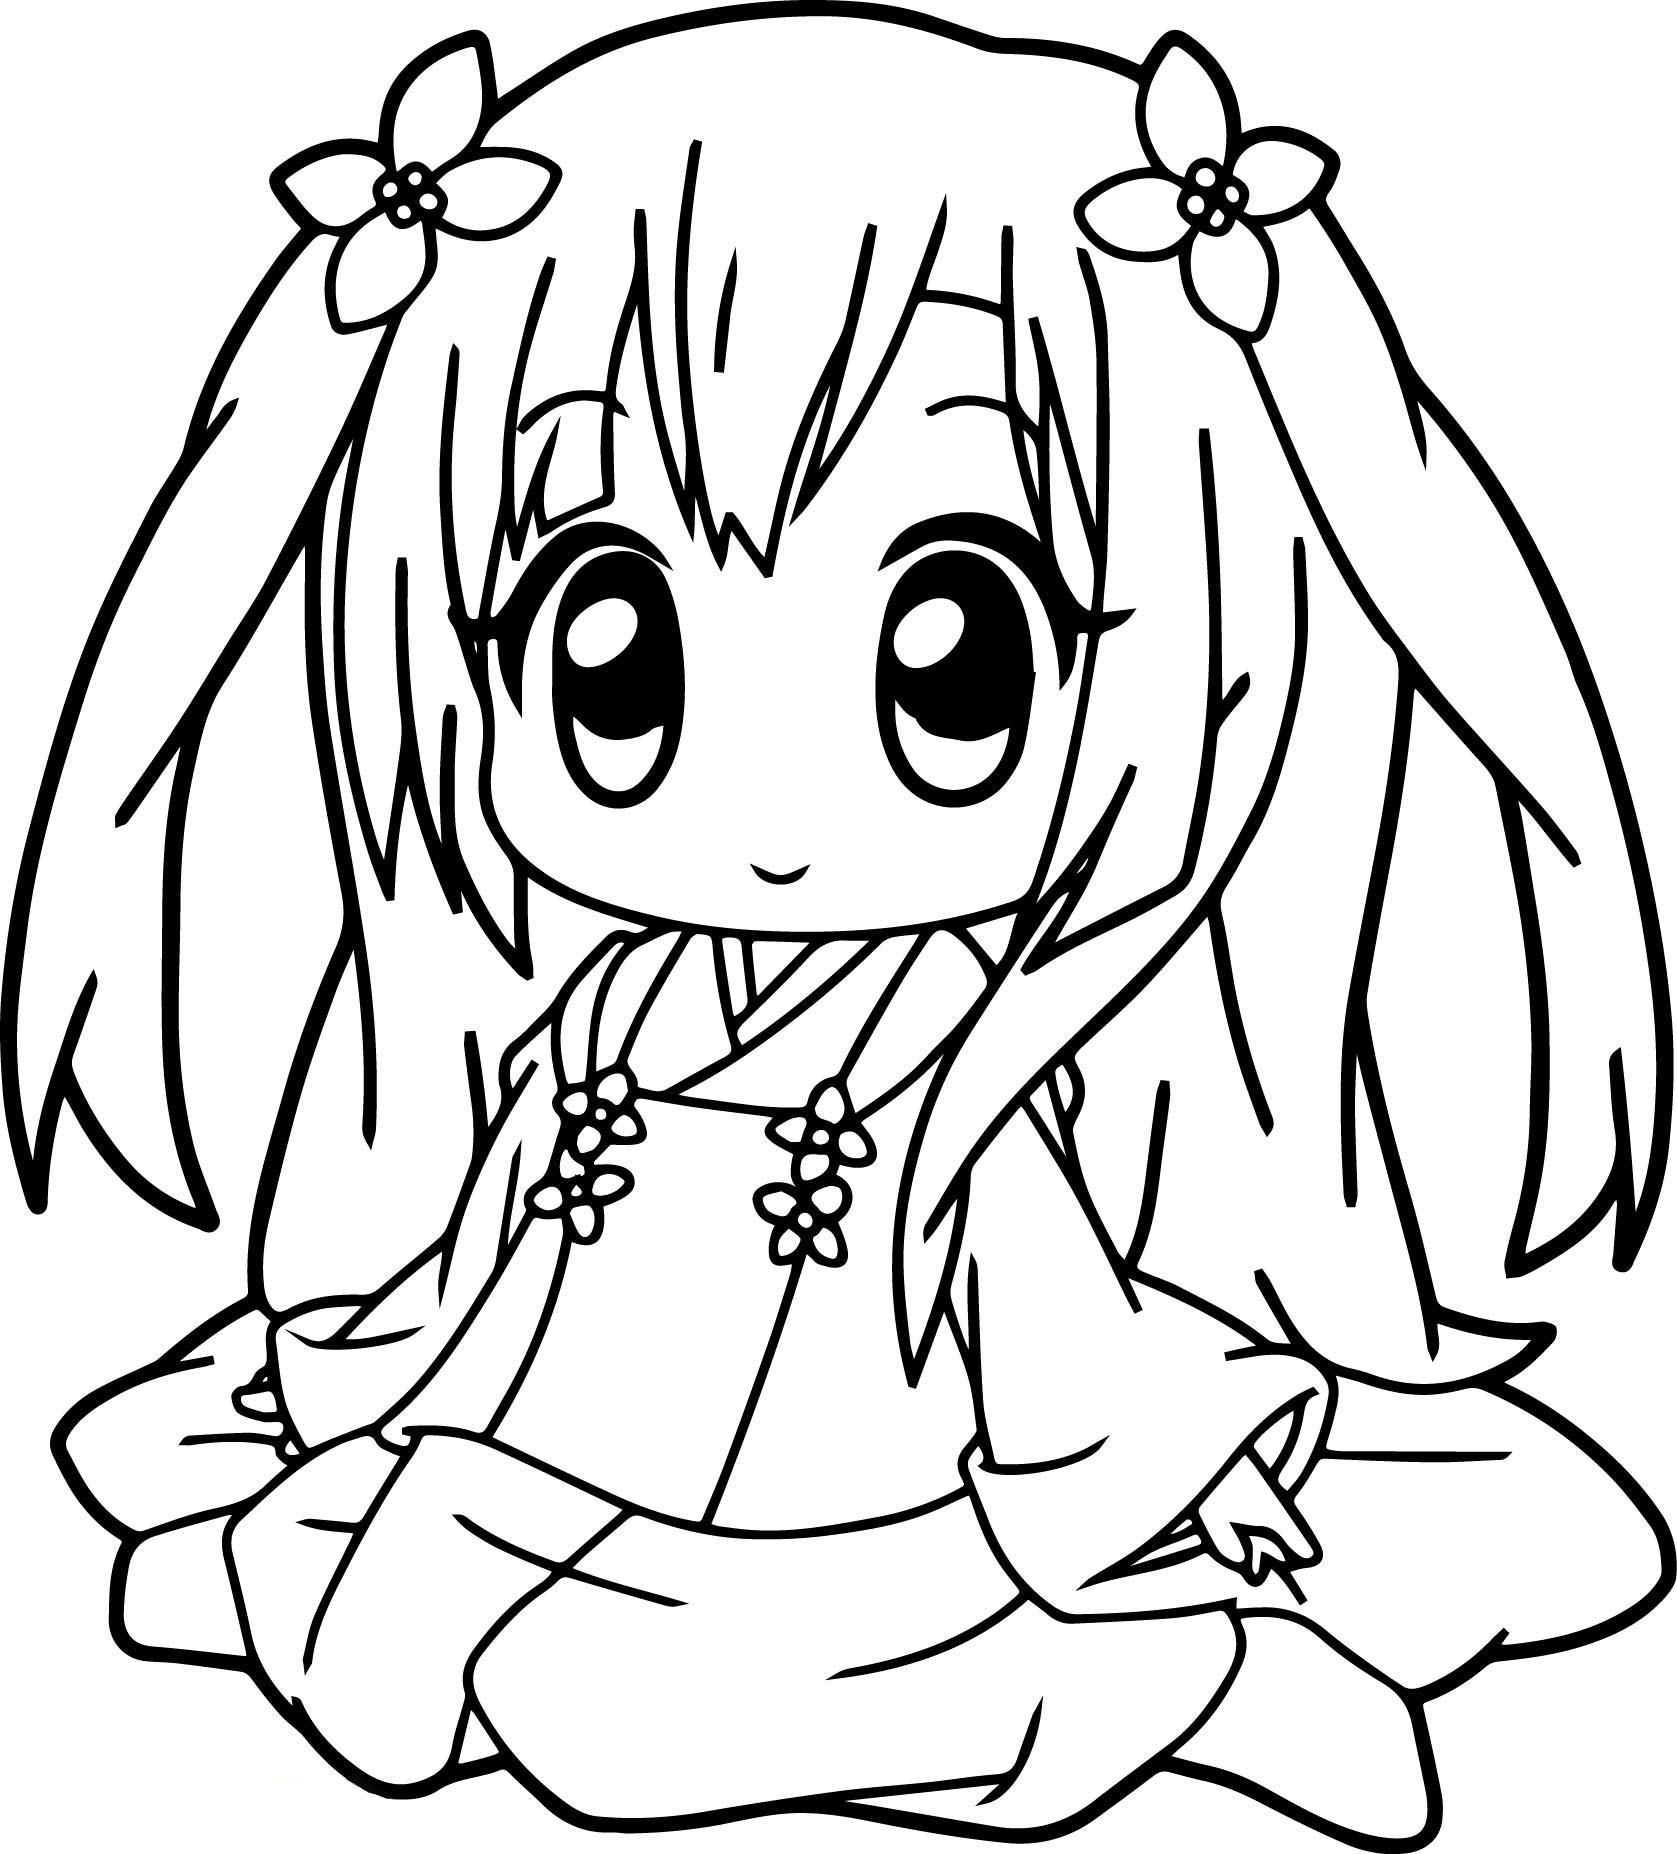 colouring in pictures for girls coloring pages for girls best coloring pages for kids girls for in pictures colouring